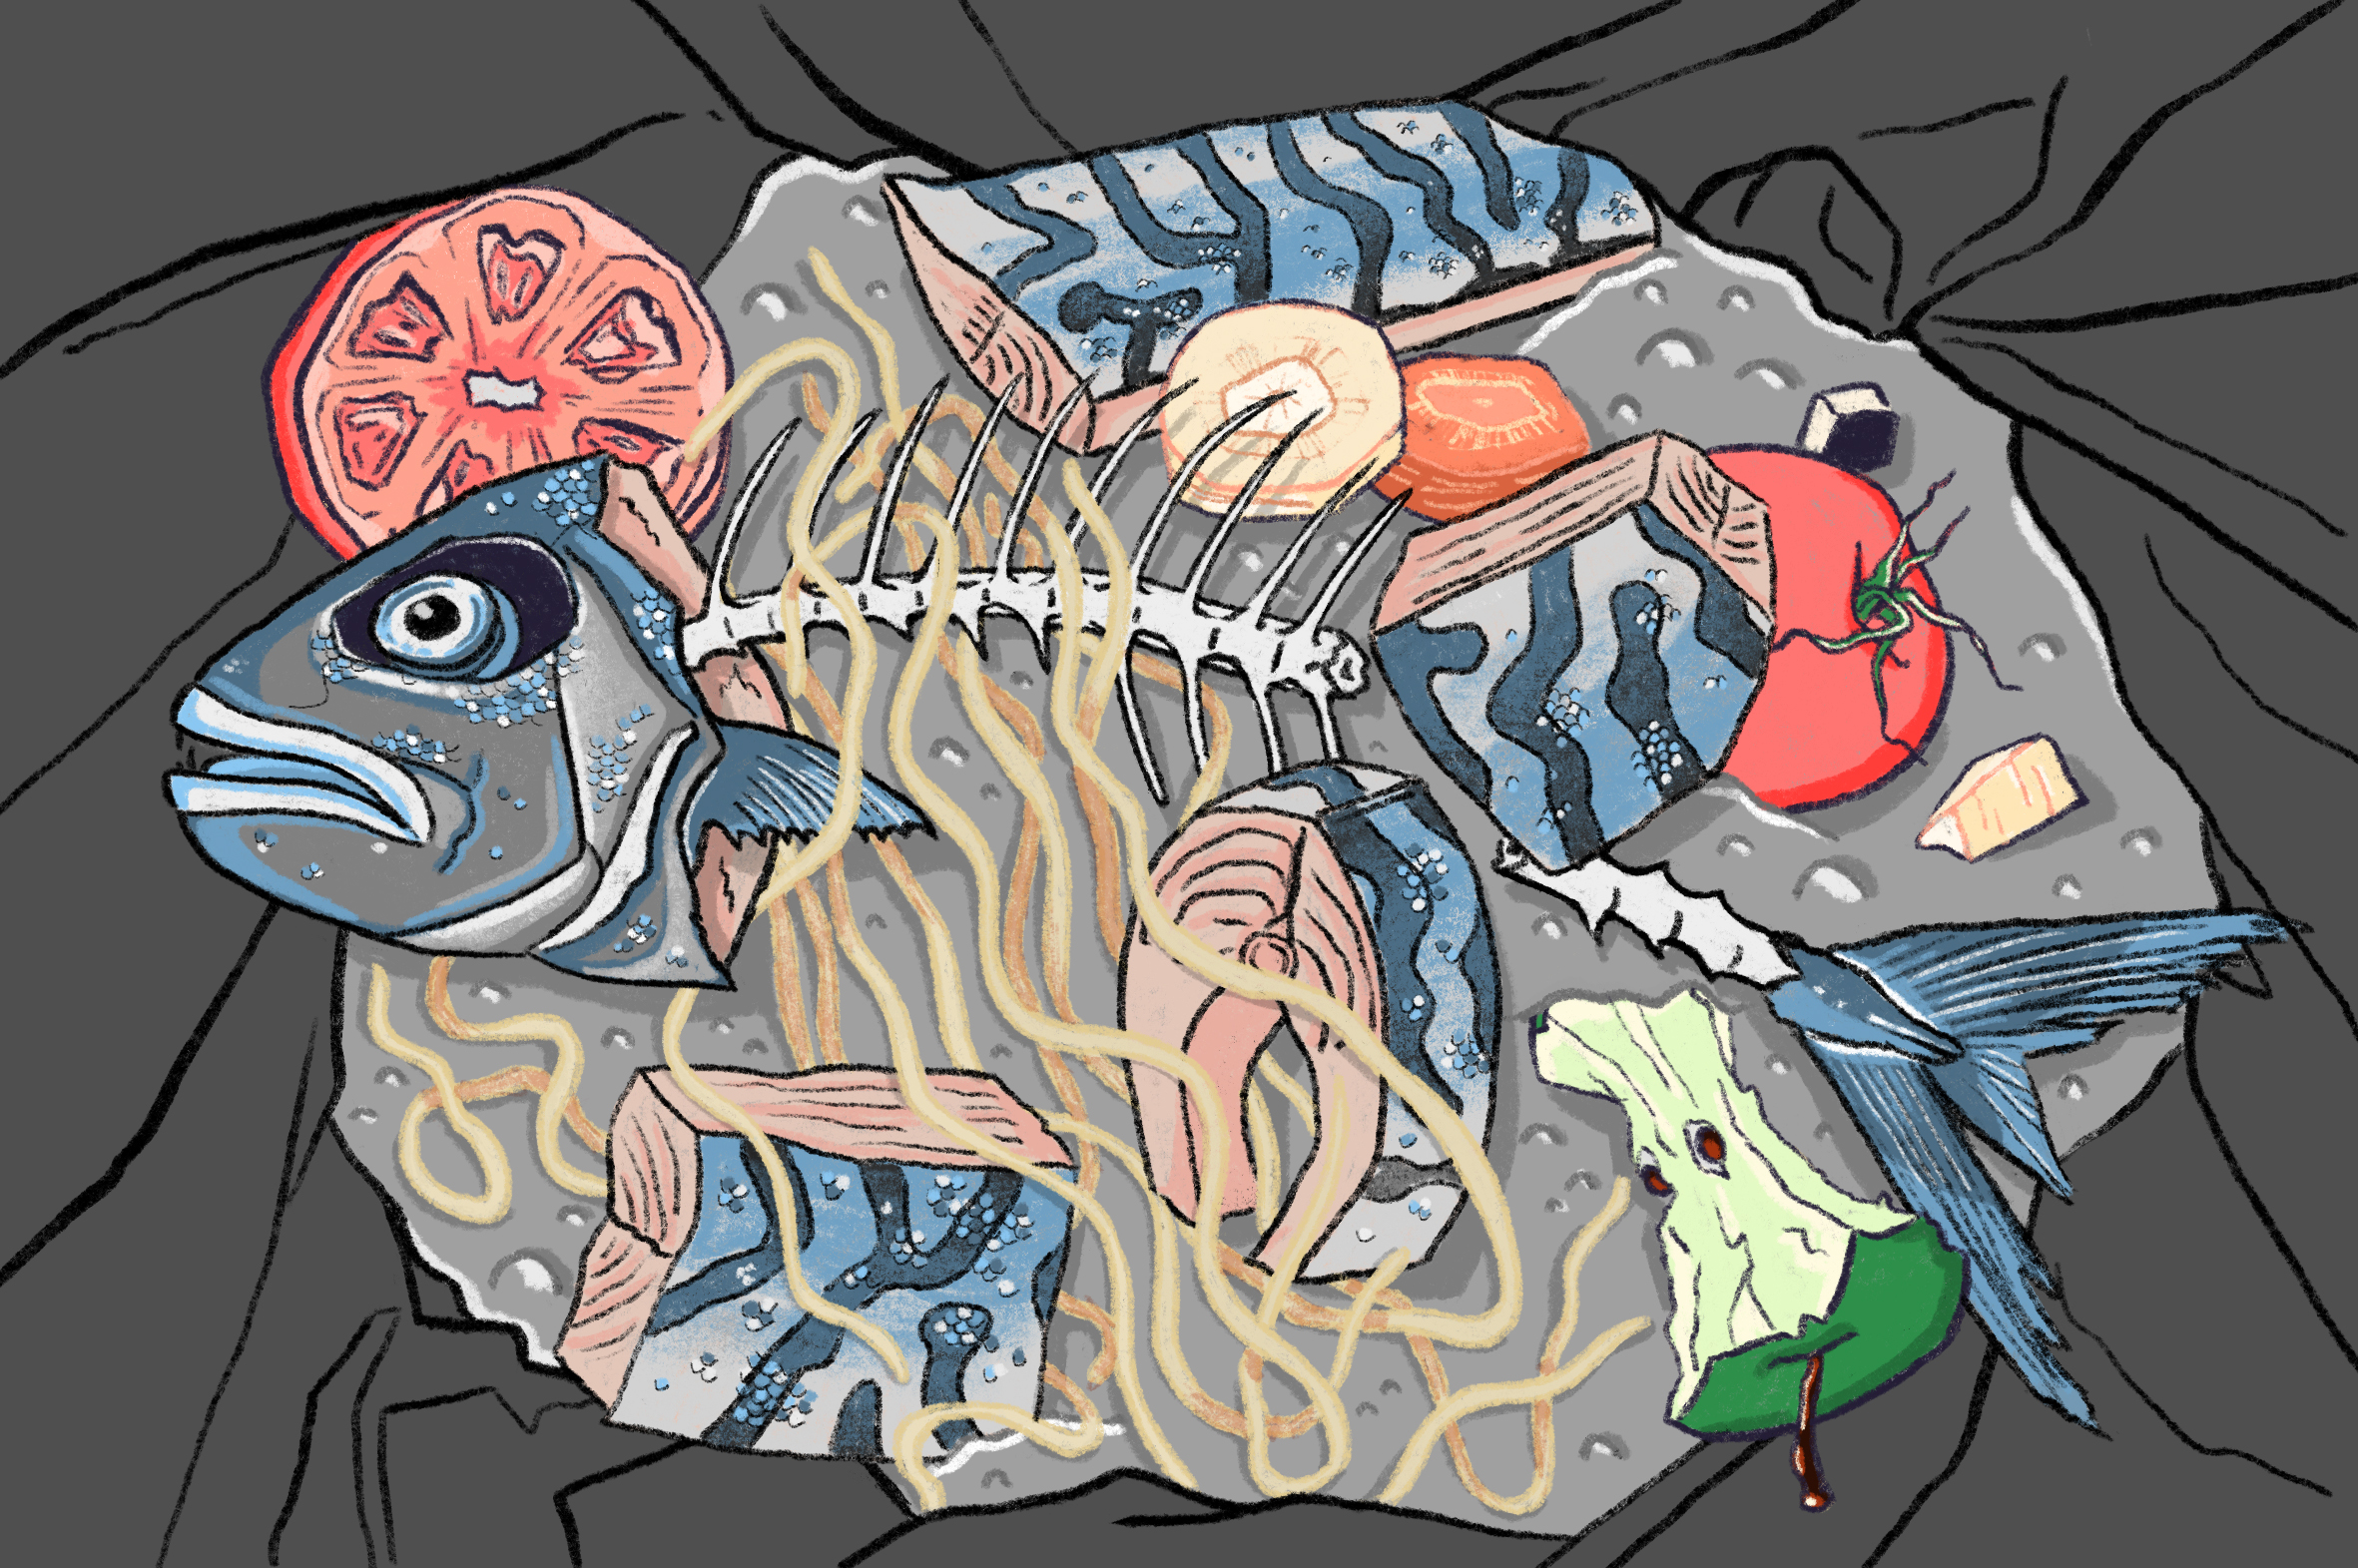 An illustration of a fish skeleton and fish meat in the garbage.